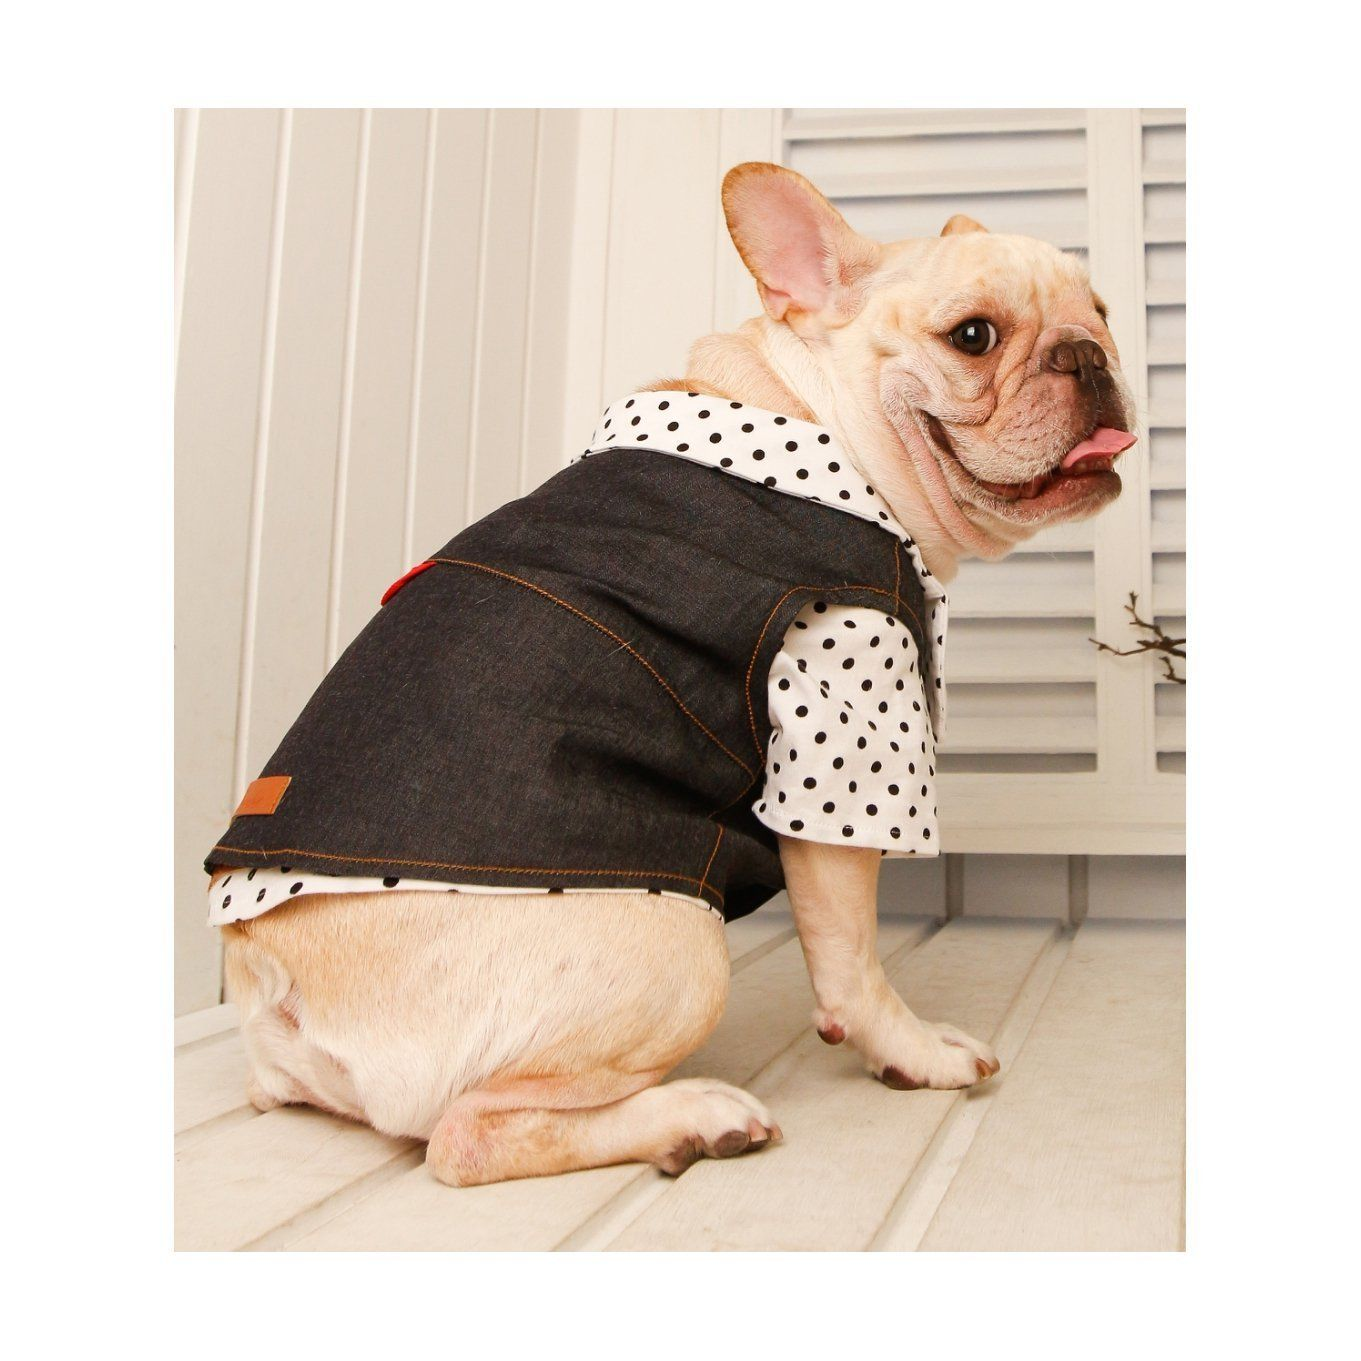 Frenchie Handmade Pet Clothing Cowboy Style Denim Vest for French Bulldog or Pug Wear For Pet Frenchic